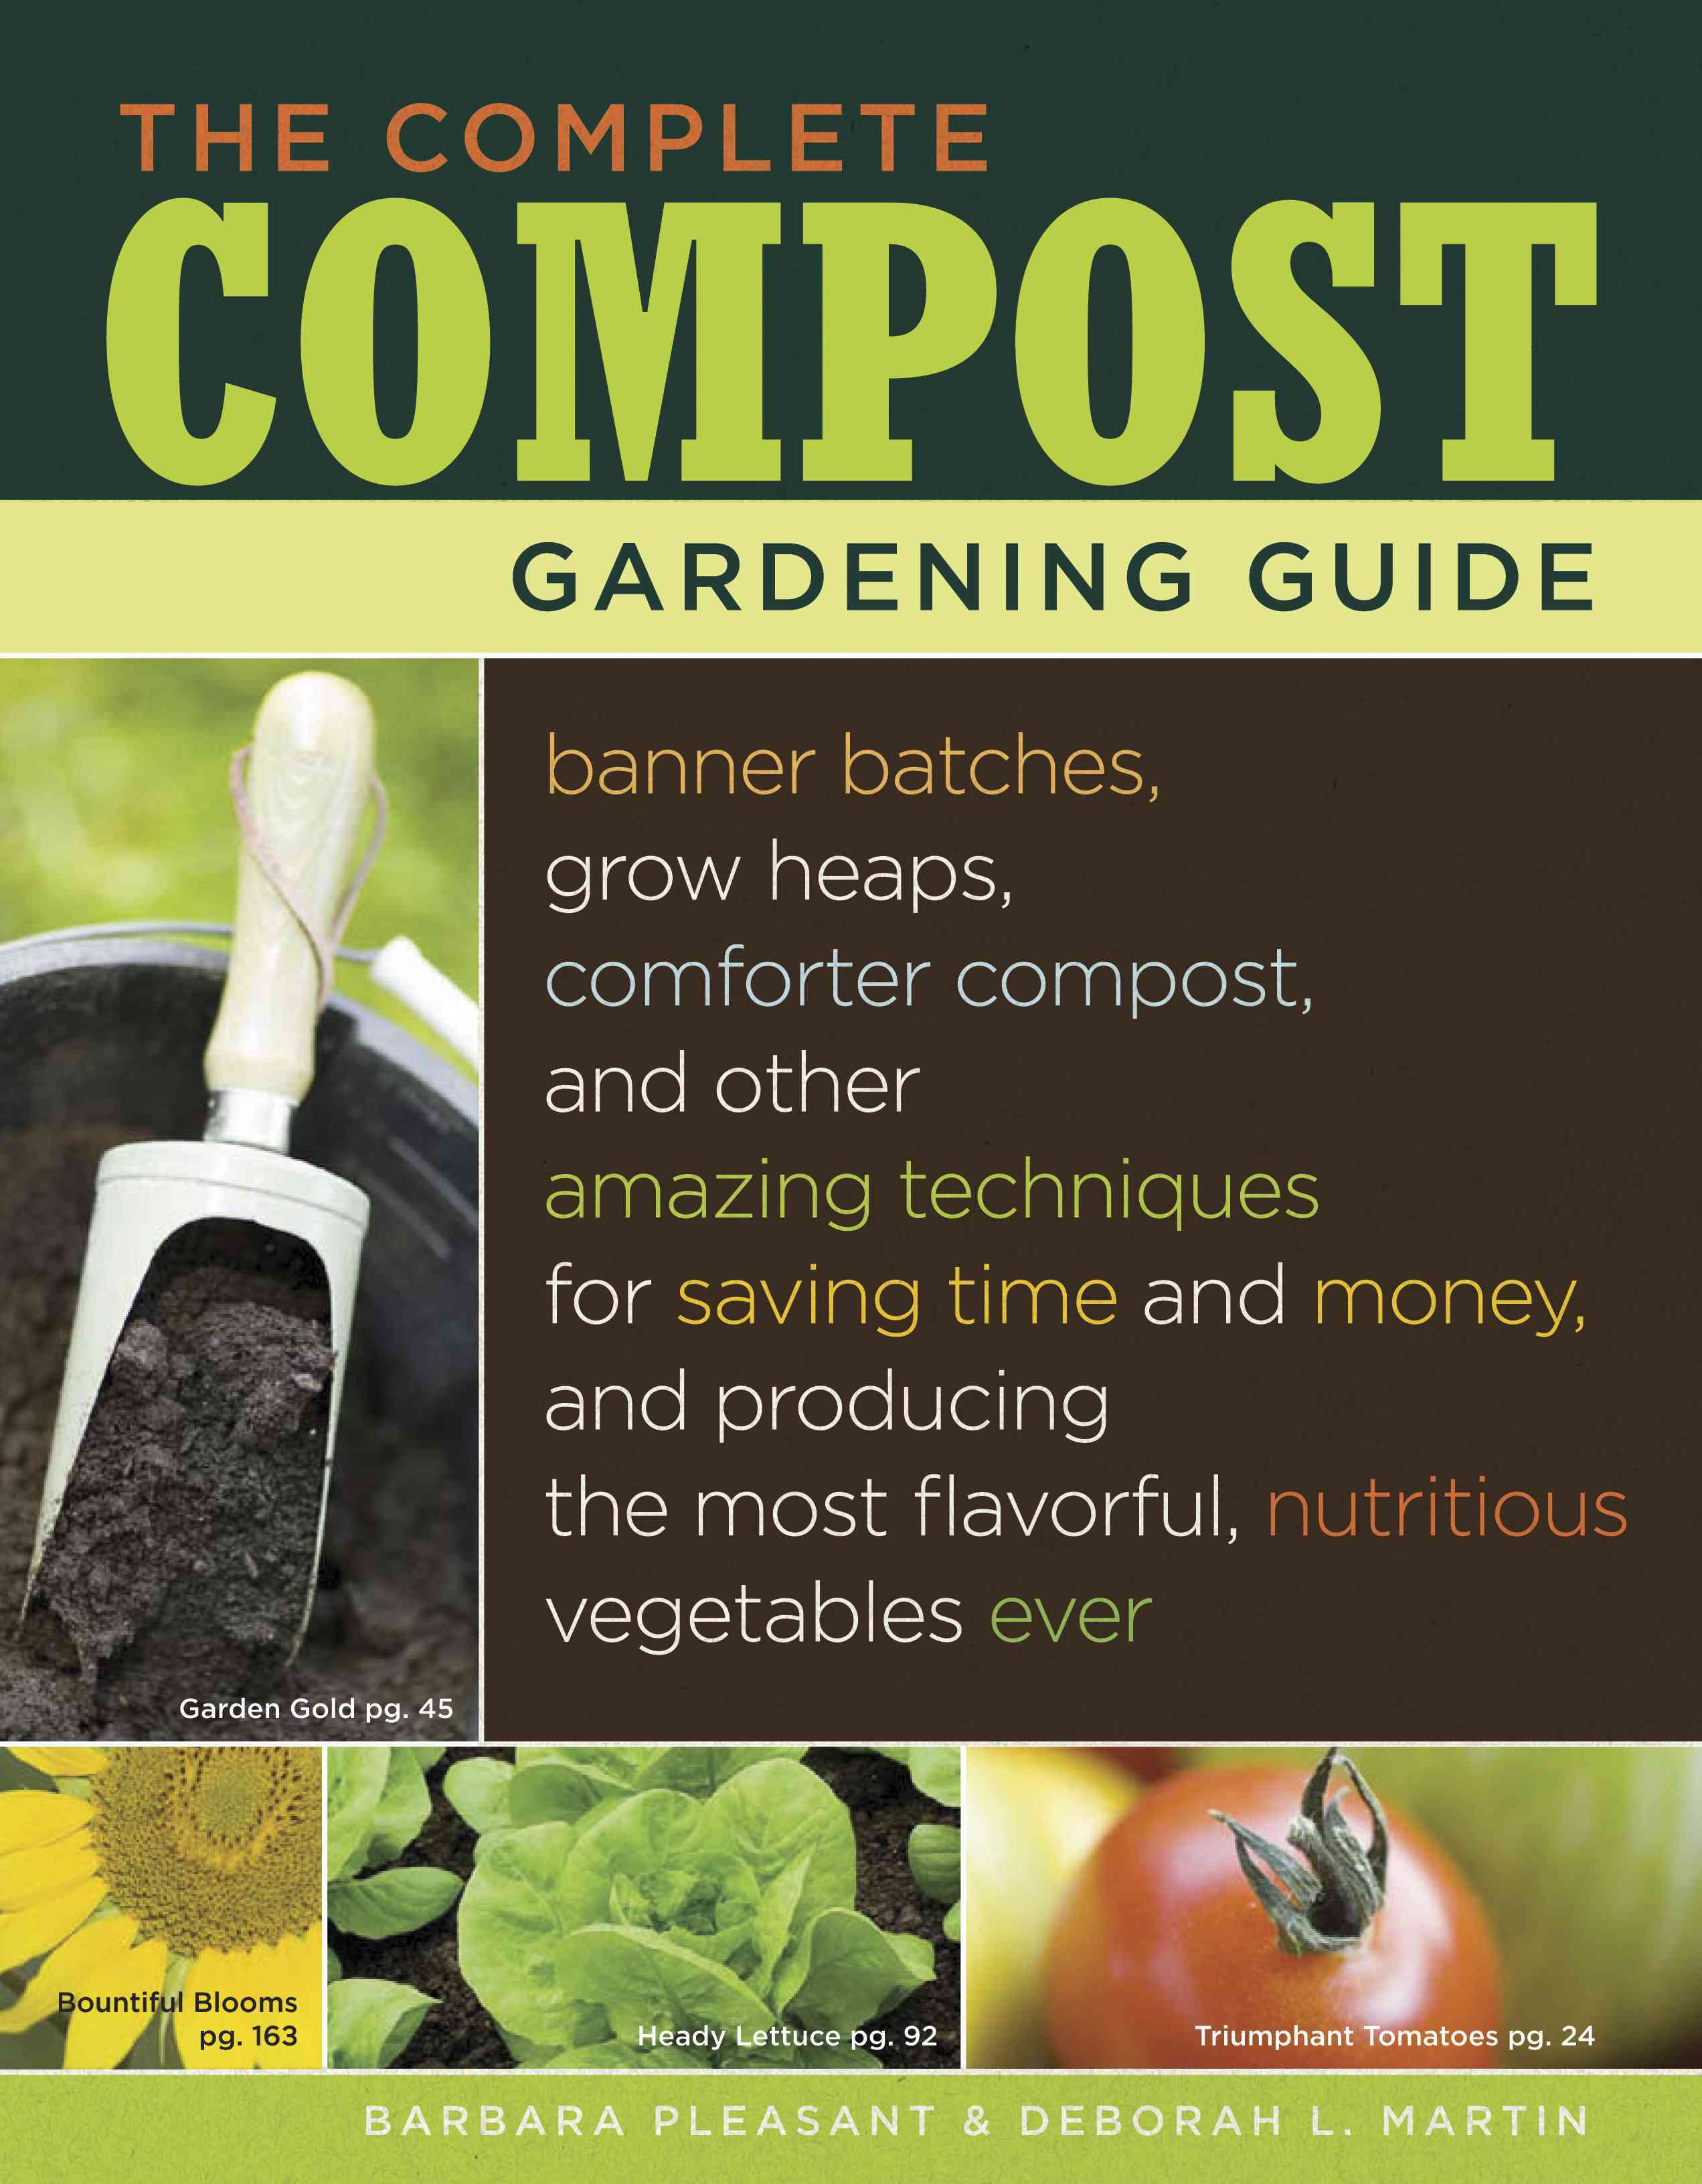 The Complete Compost Gardening Guide (Paperback)